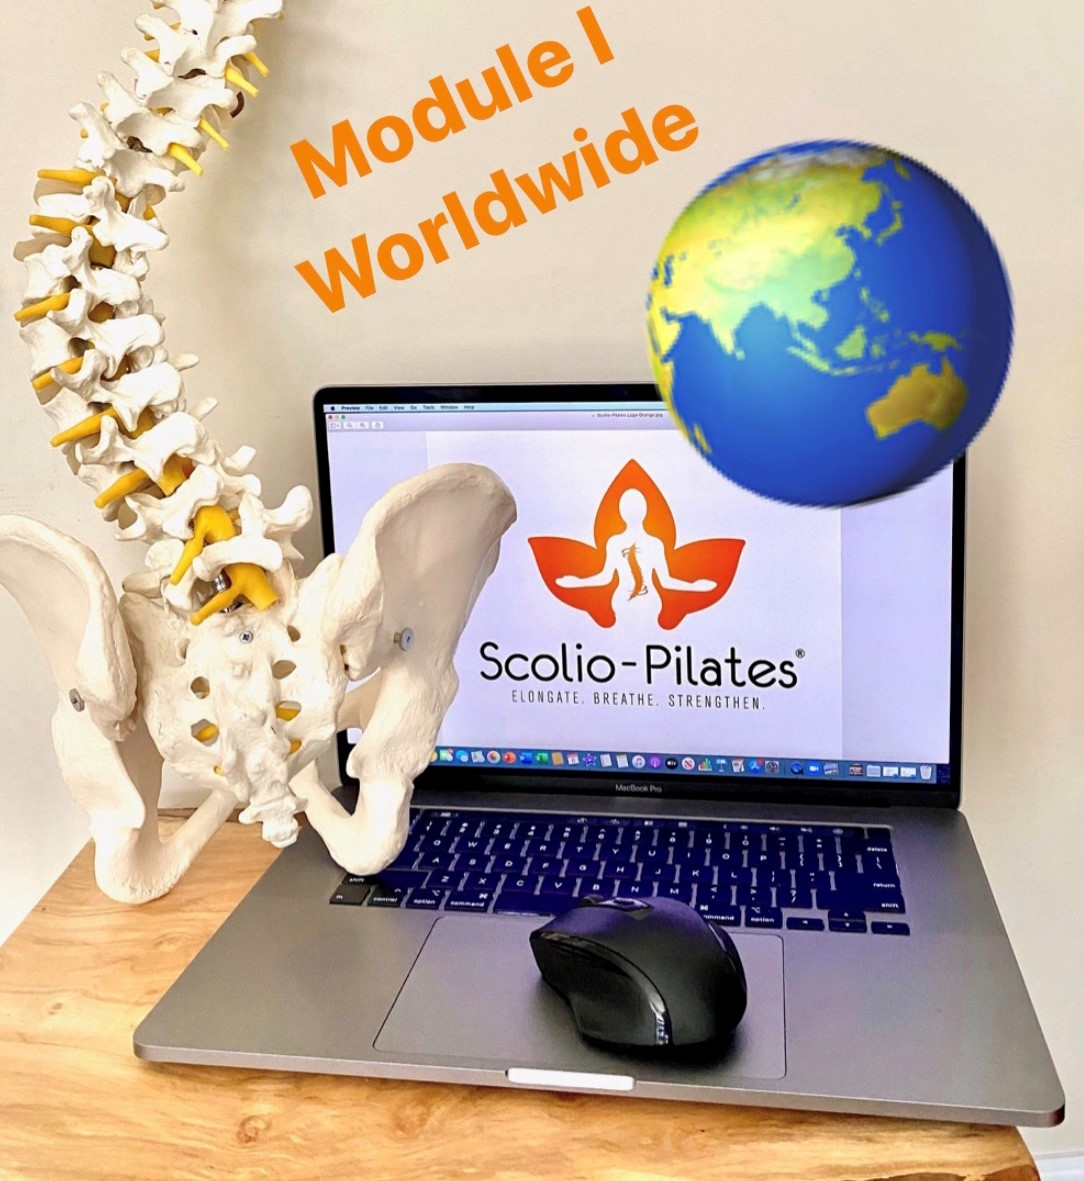 Scolio-Pilates Worldwide